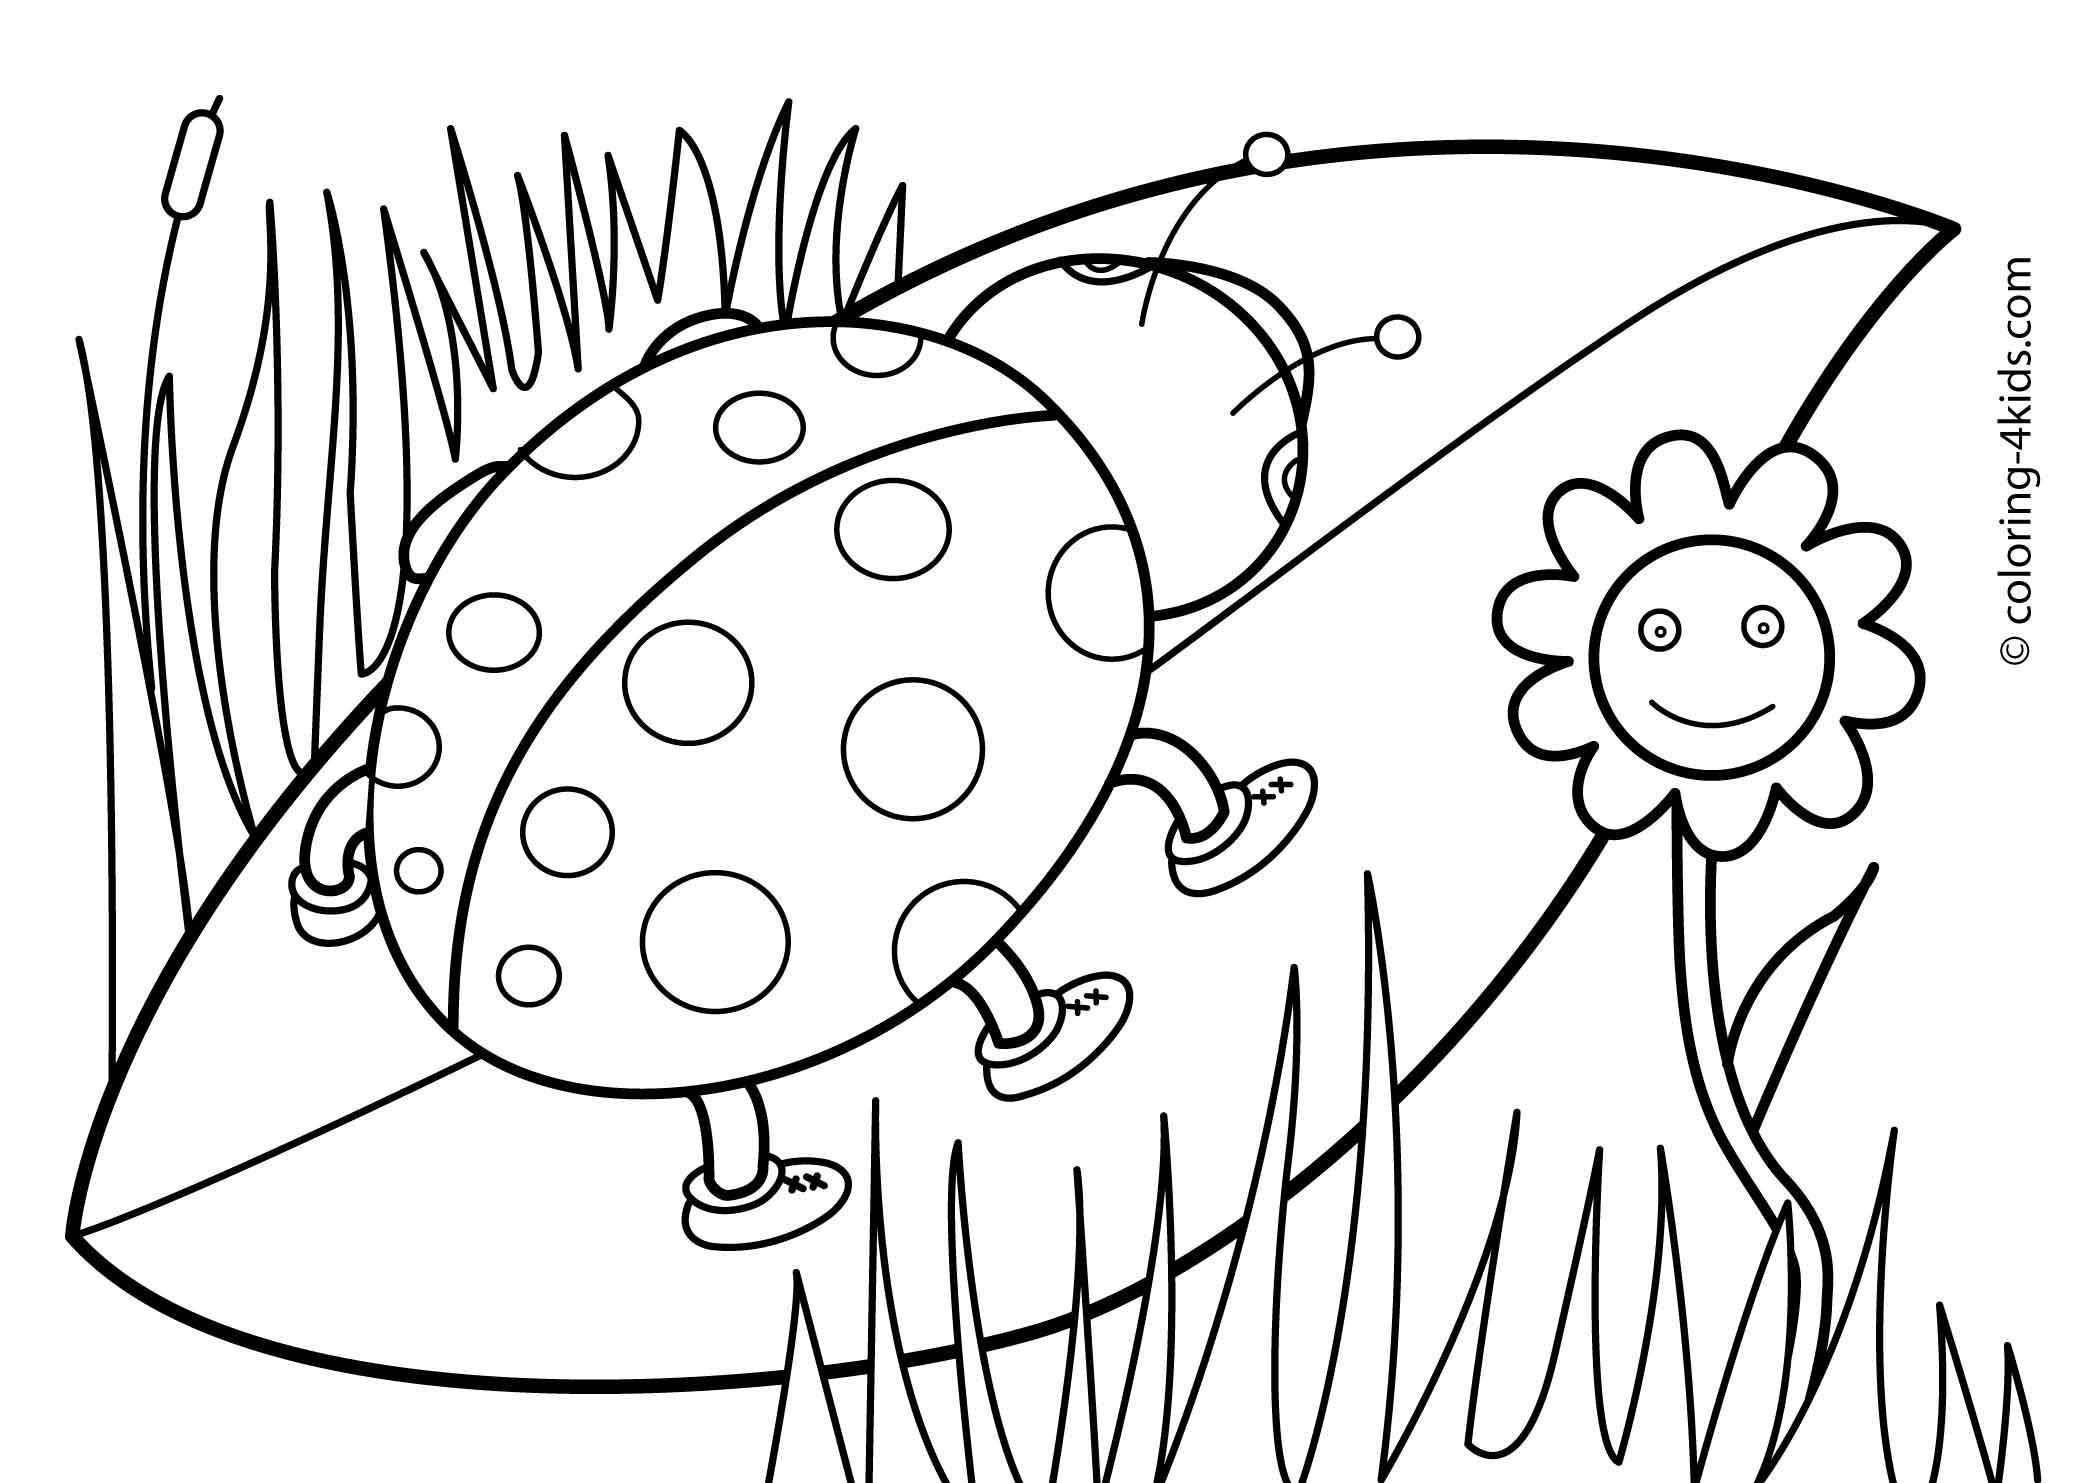 seasons coloring pages spring season nature printable coloring pages coloring seasons pages